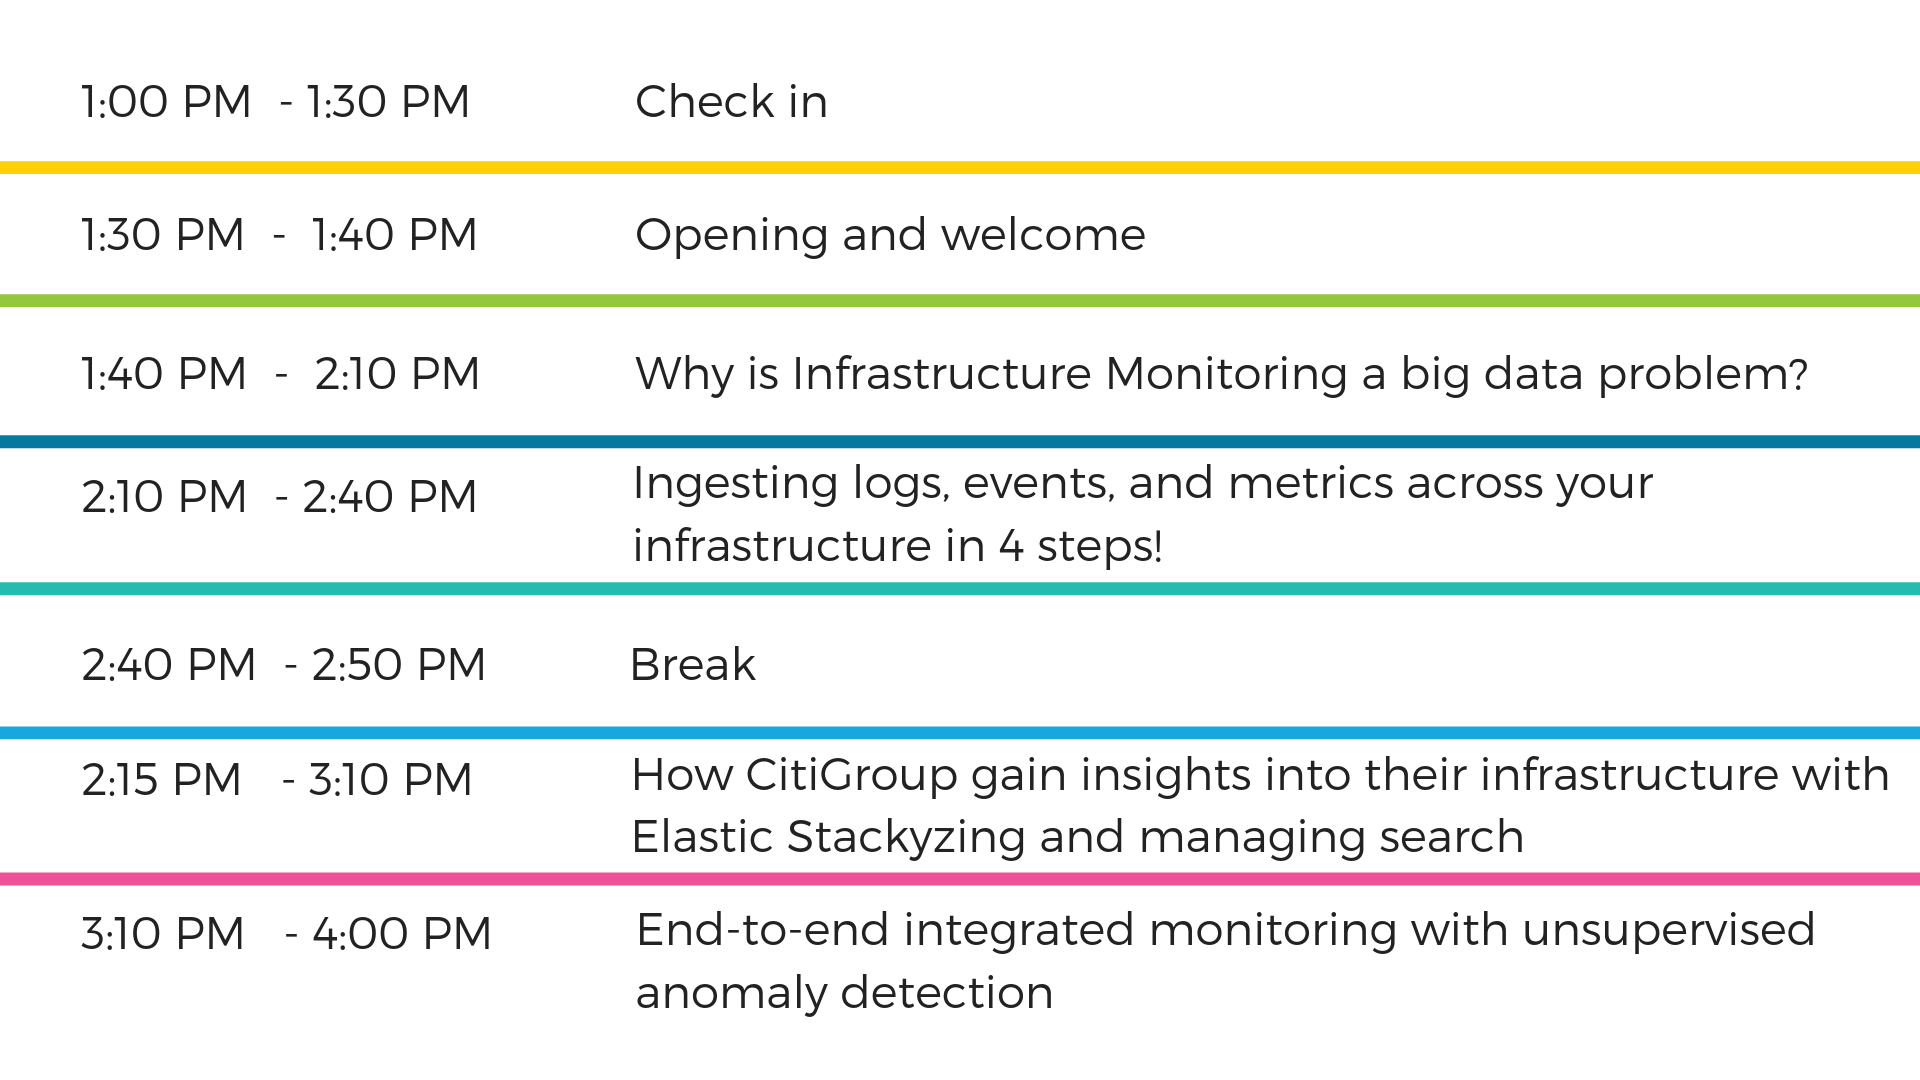 Agenda End-to-end integrated monitoring with unsupervised anomaly detection Elastic  (1)